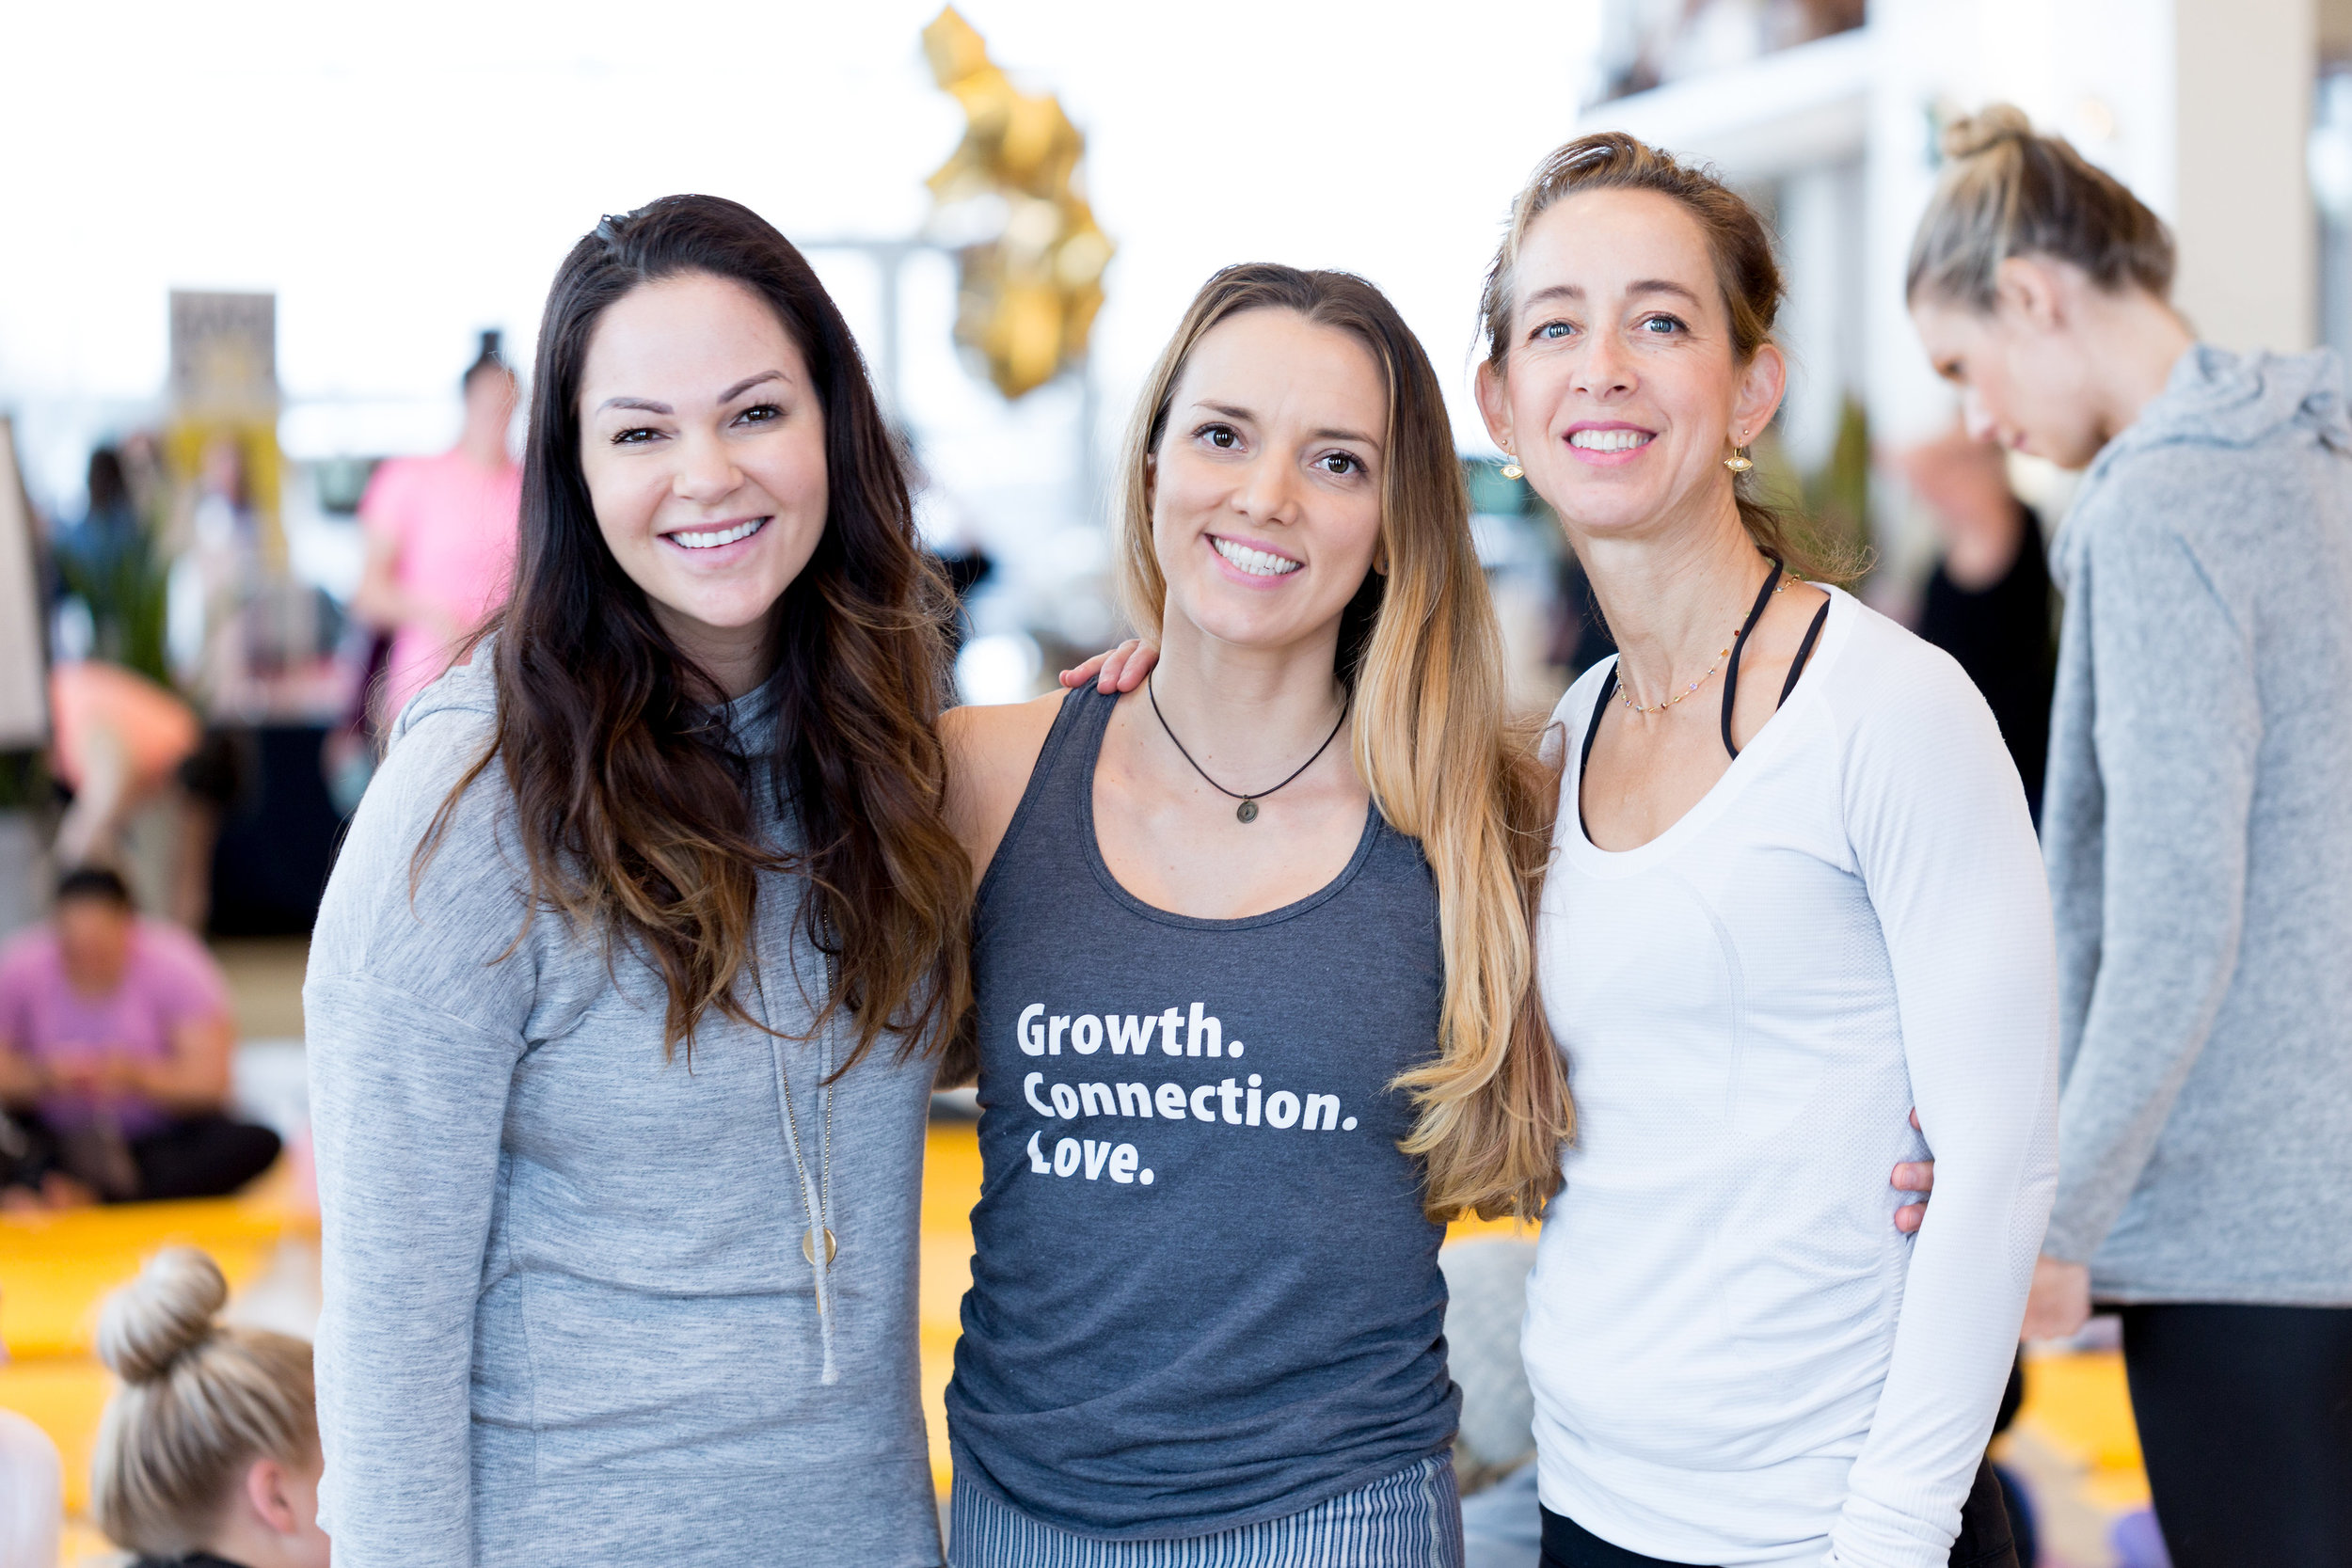 Yoga instructors Katie Miller, Danielle Jokinen and Jes Rosenberg.